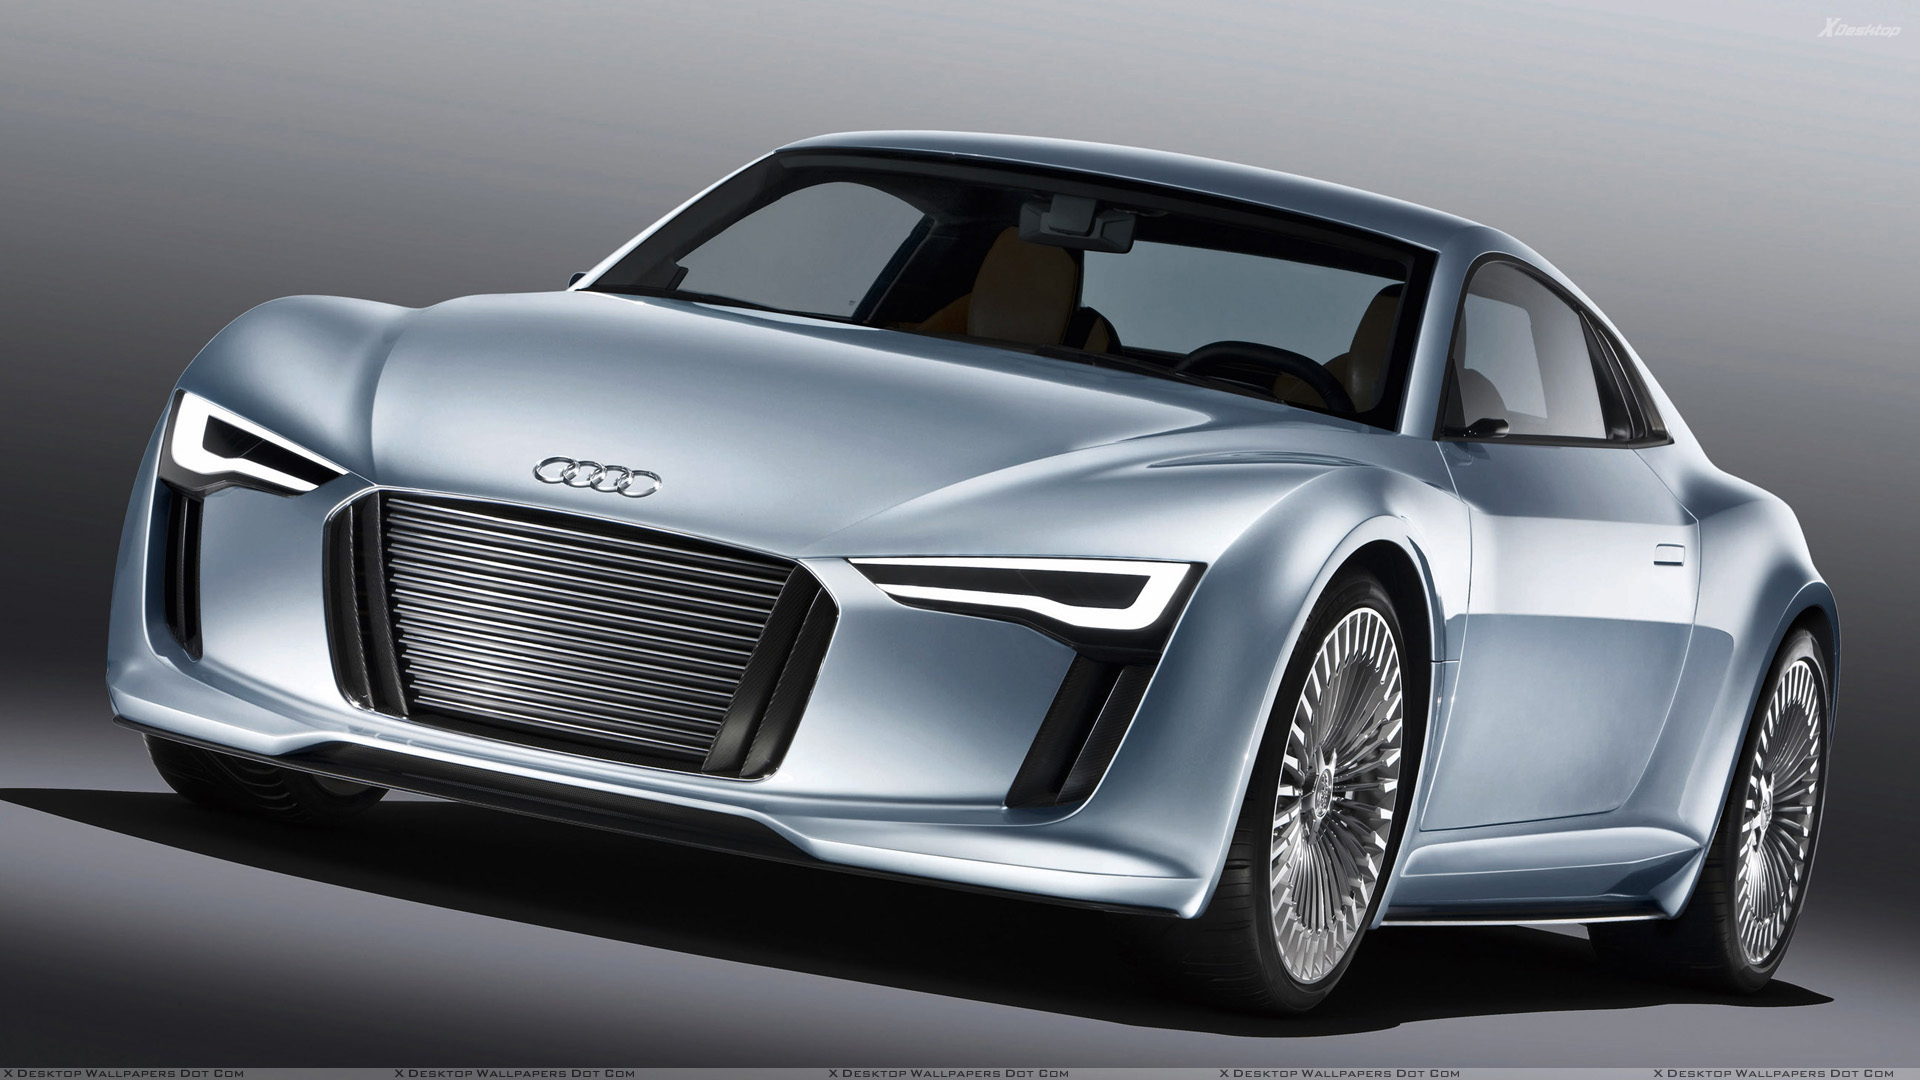 Front Side Pose Of 2010 Audi e-tron Detroit Show Car In Blue Wallpaper